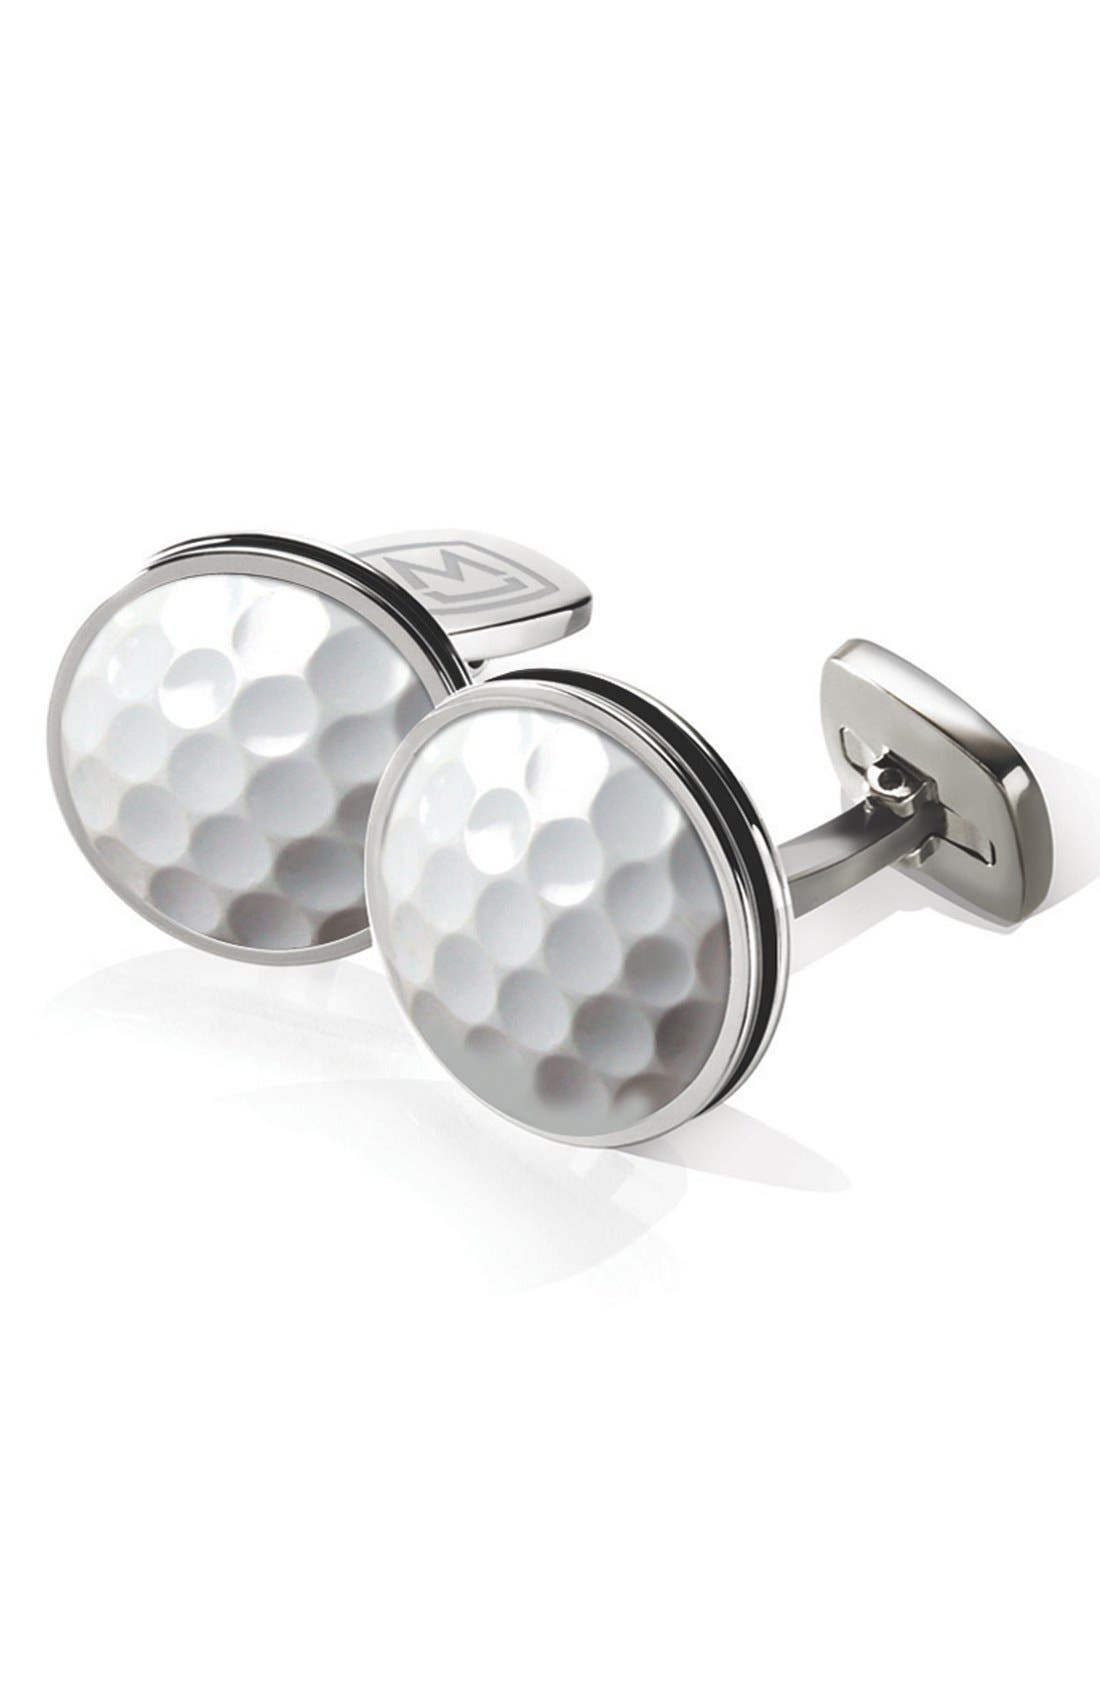 M-CLIP® Golf Ball Cuff Links